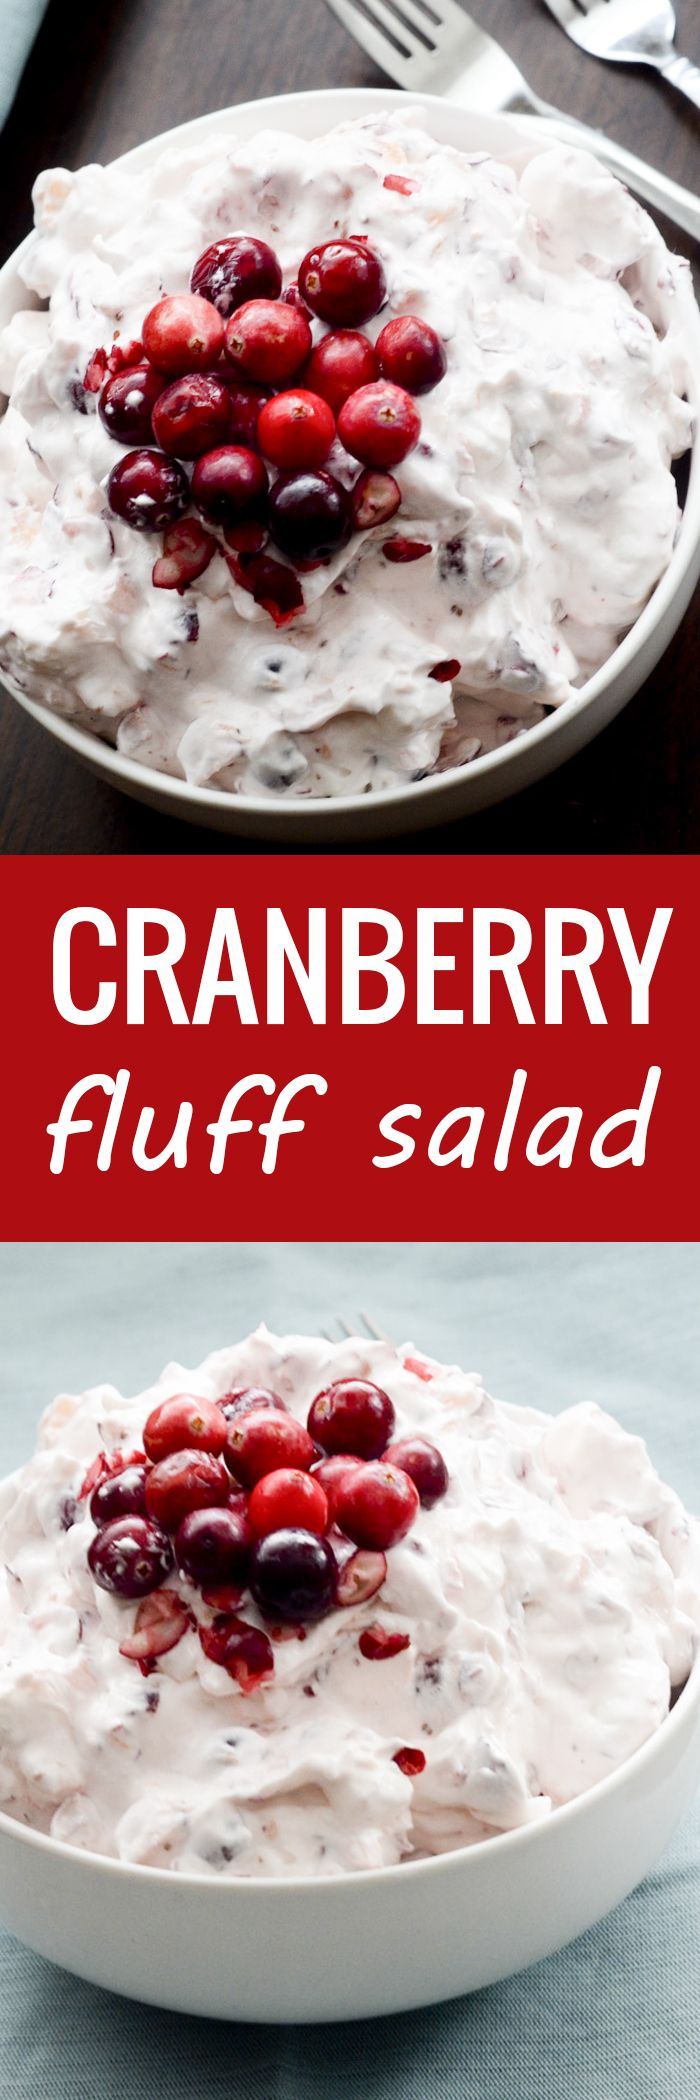 Cranberry Fluff Salad - great side for Thanksgiving - Recipe Diaries #cranberries